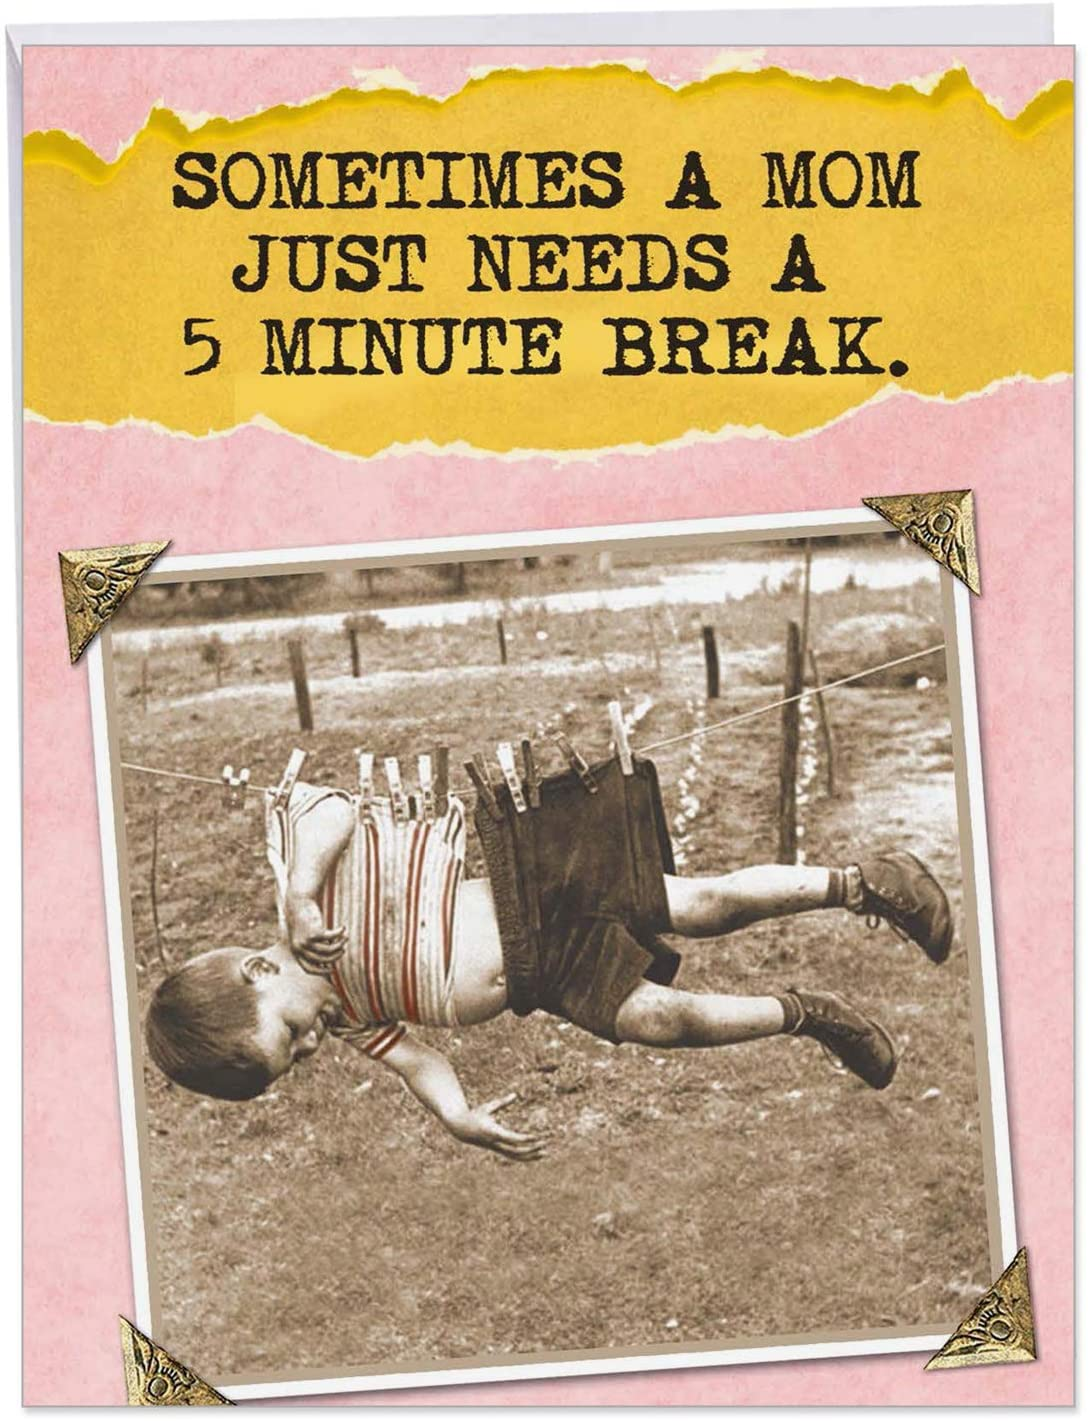 Hilarious 5 Minute Break - Happy Mother's Day Card with Envelope (Big 8.5 x 11 Inch) - Retro and Vintage Greeting Notecard from Kids, Children - Big, Playful Stationery Card for Mothers J0211